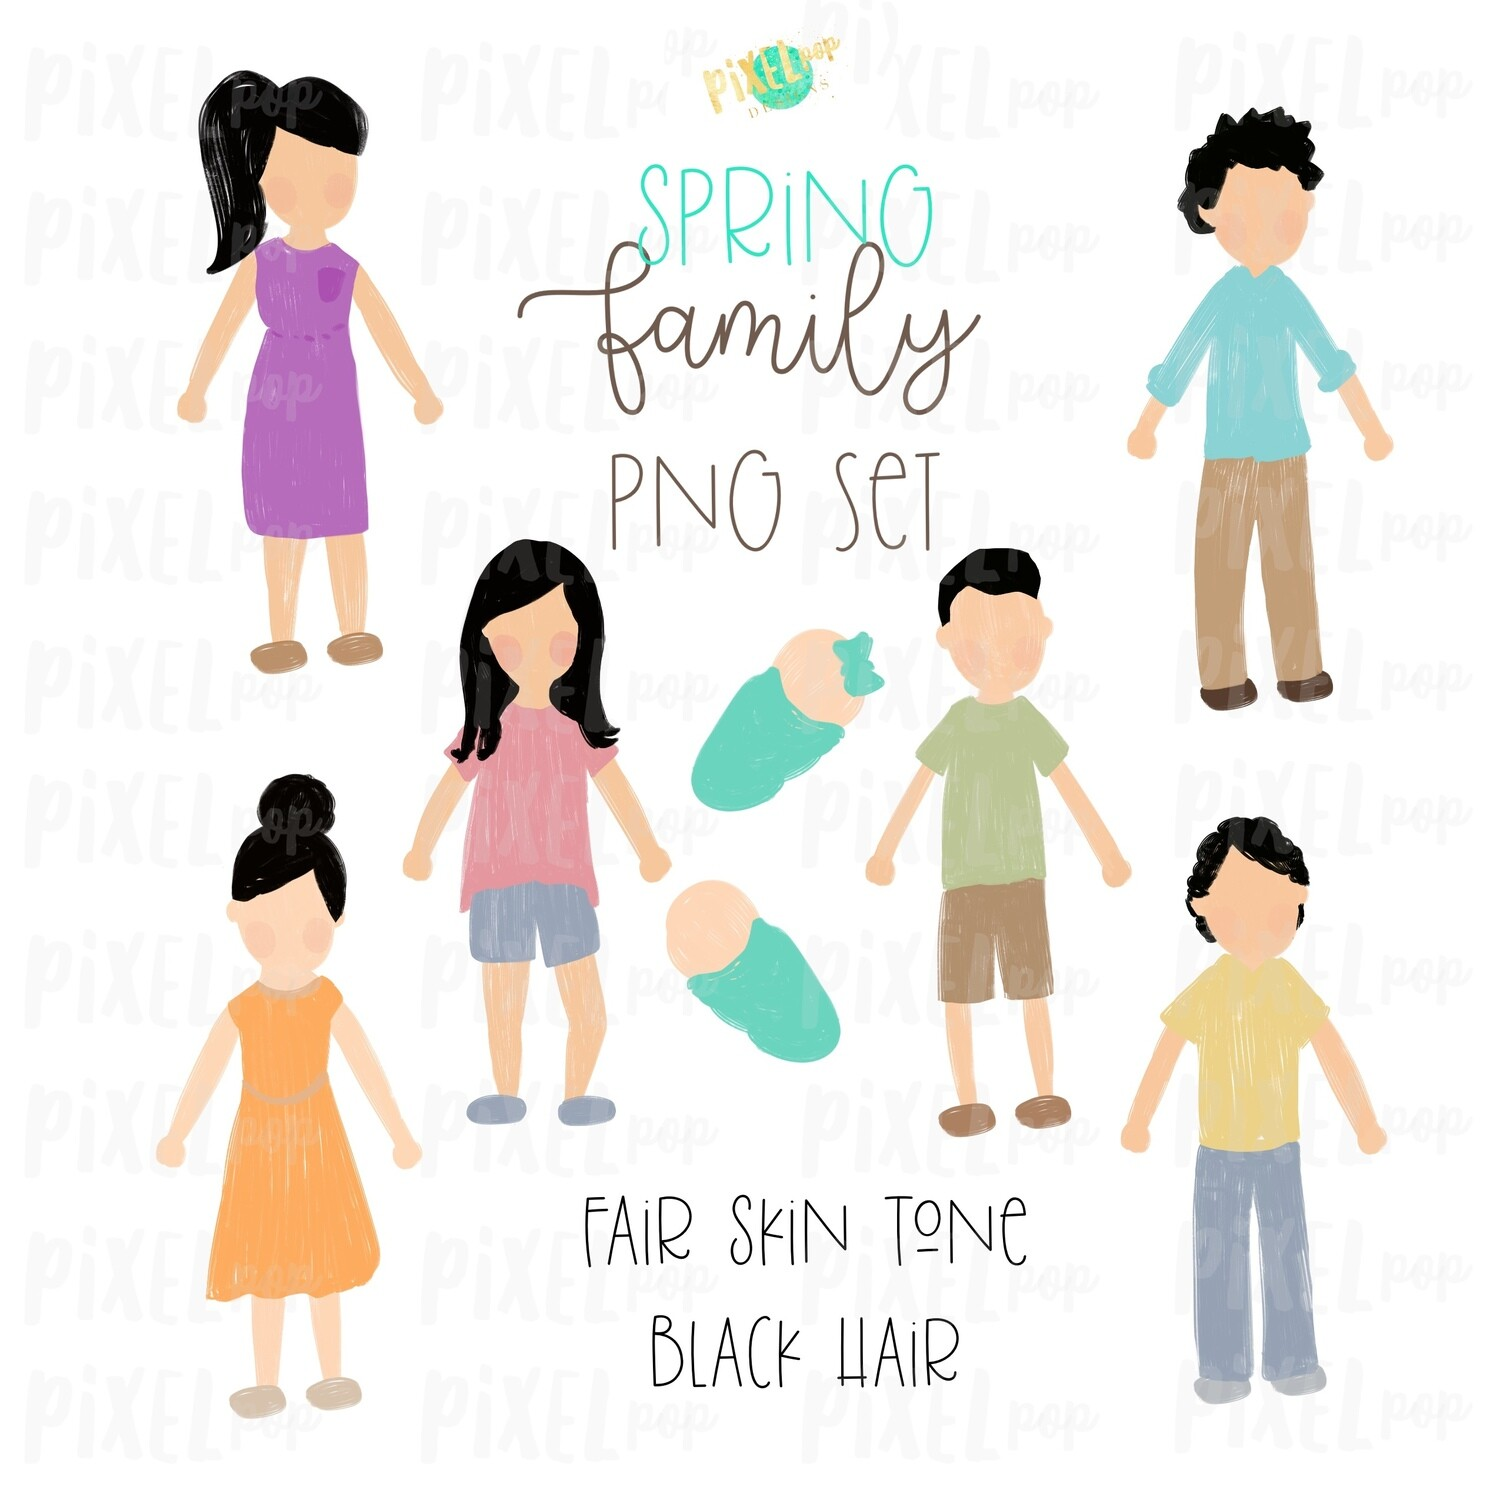 SPRING Fair Skin Black Hair Stick People Figure Family PNG Sublimation | Family Ornament | Family Portrait Images | Digital Download